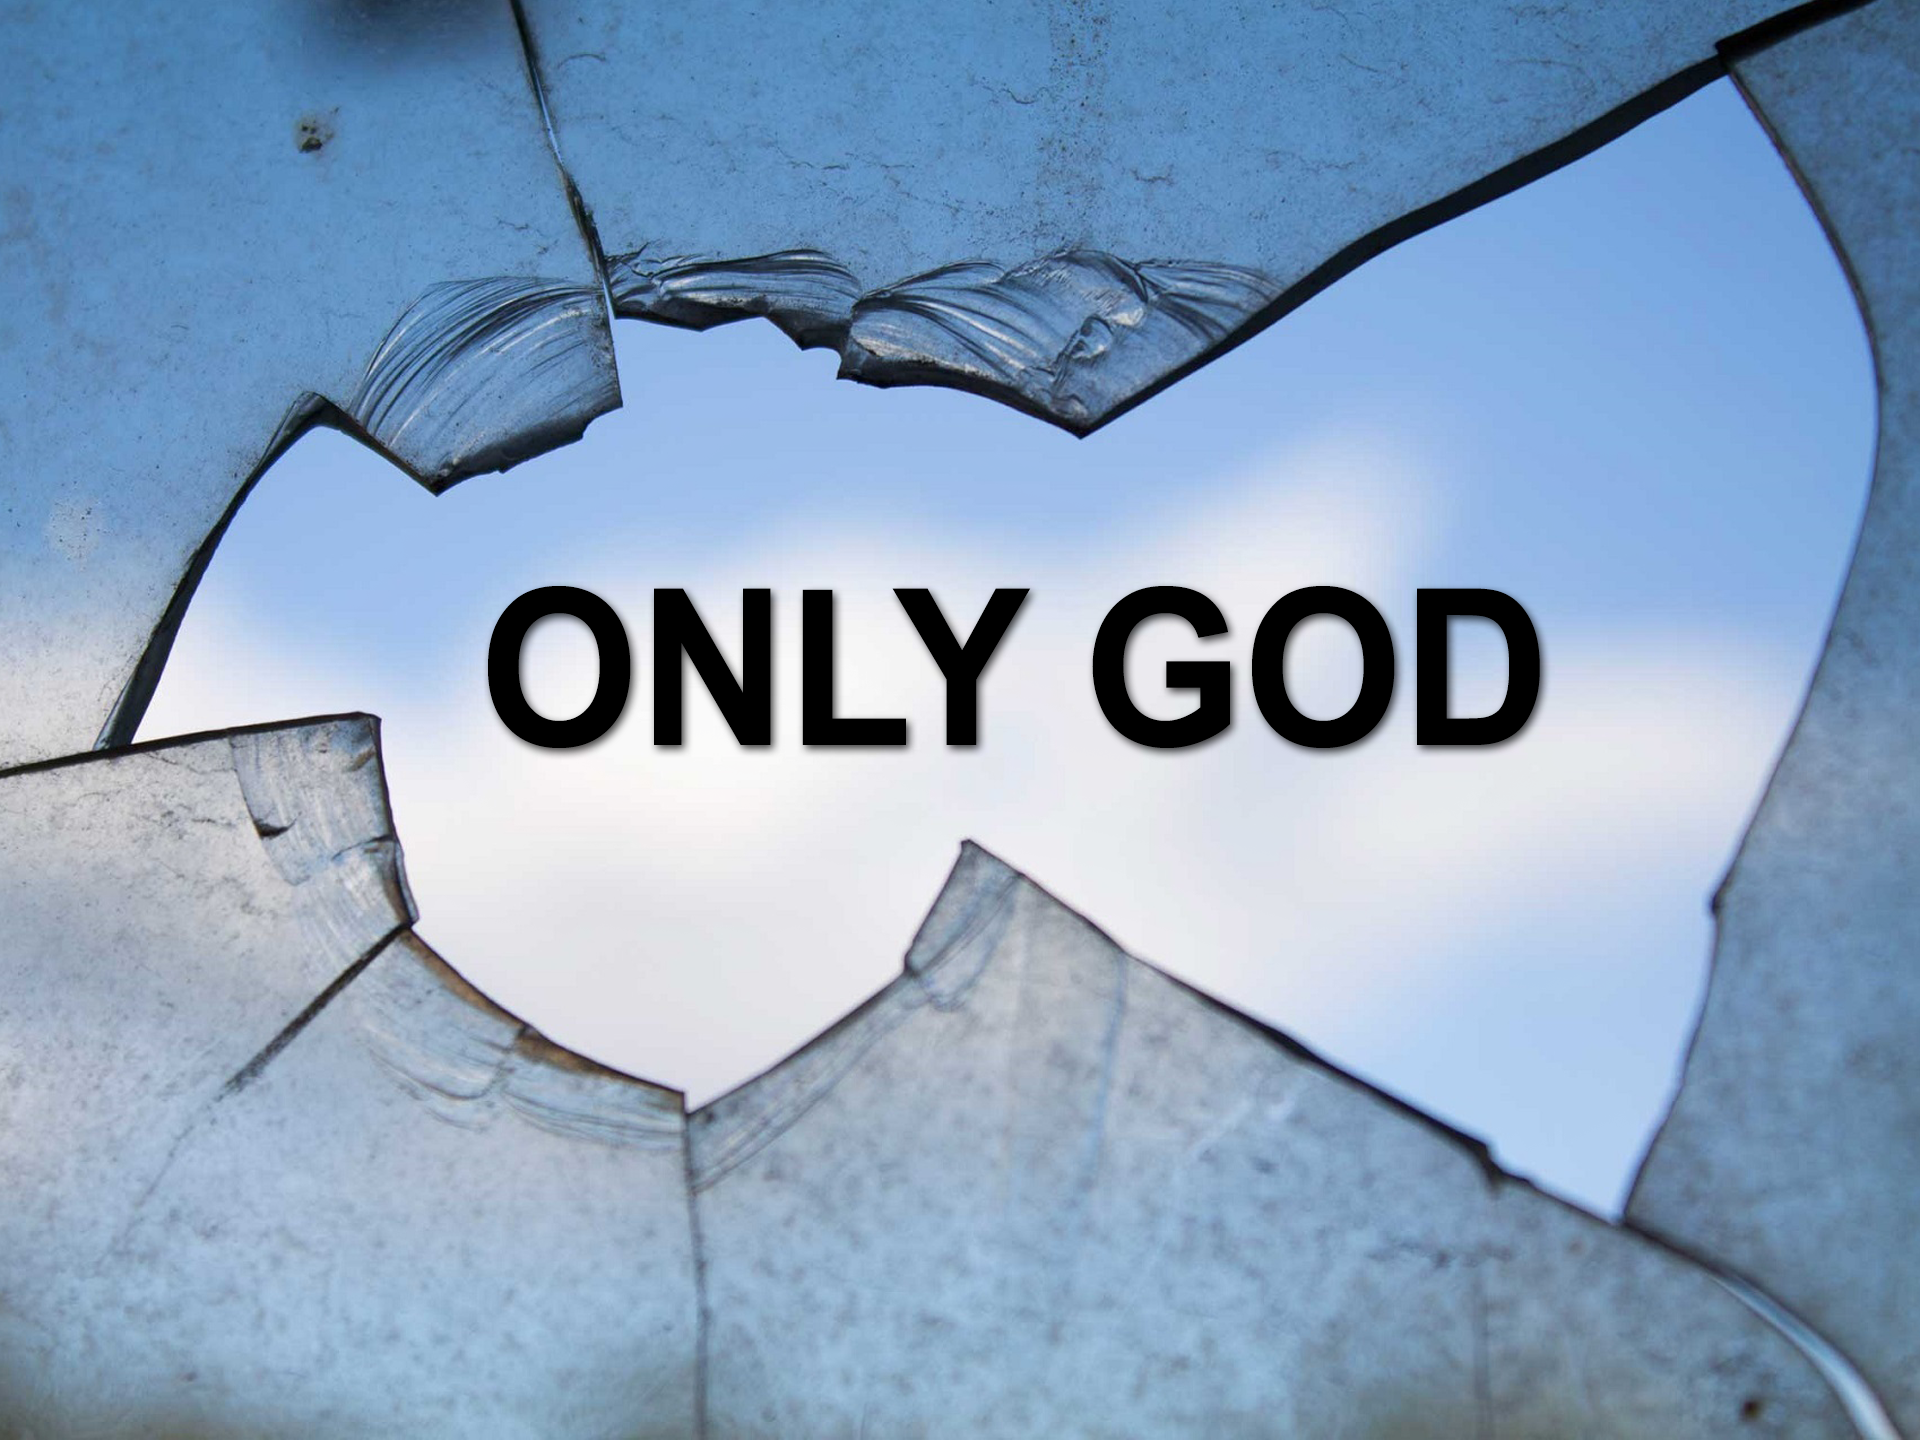 20180520 Only God2.png